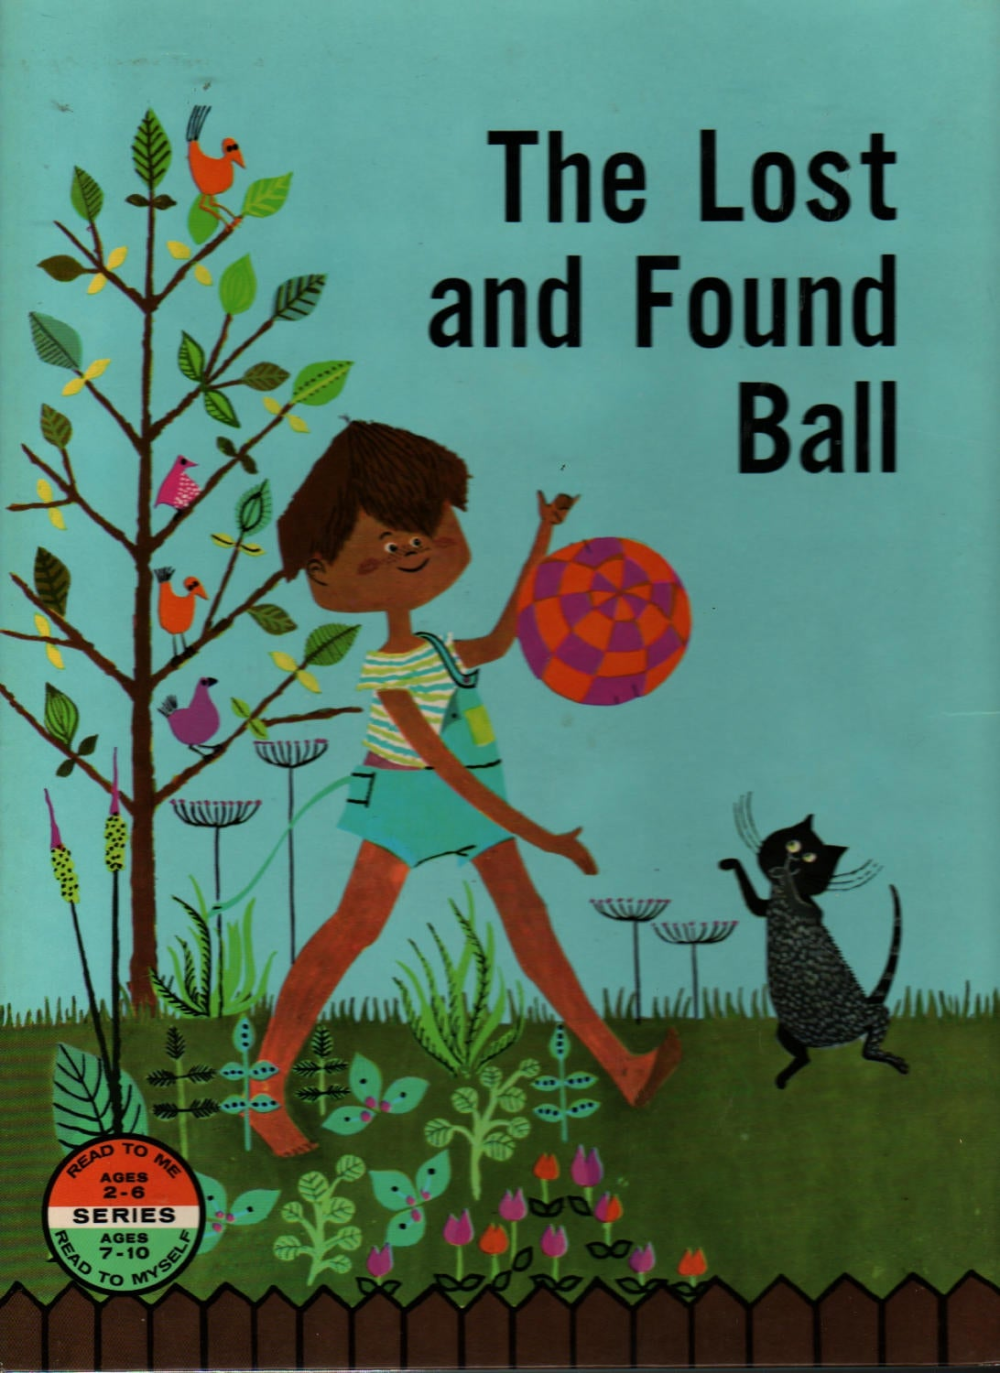 The Lost And Found Ball Jerrold Beim Kay Ware And Lucille Sutherland Ylva Kallstrom 1961 Vintage Kids Book Vintage Children S Books Kids Book Lost Found